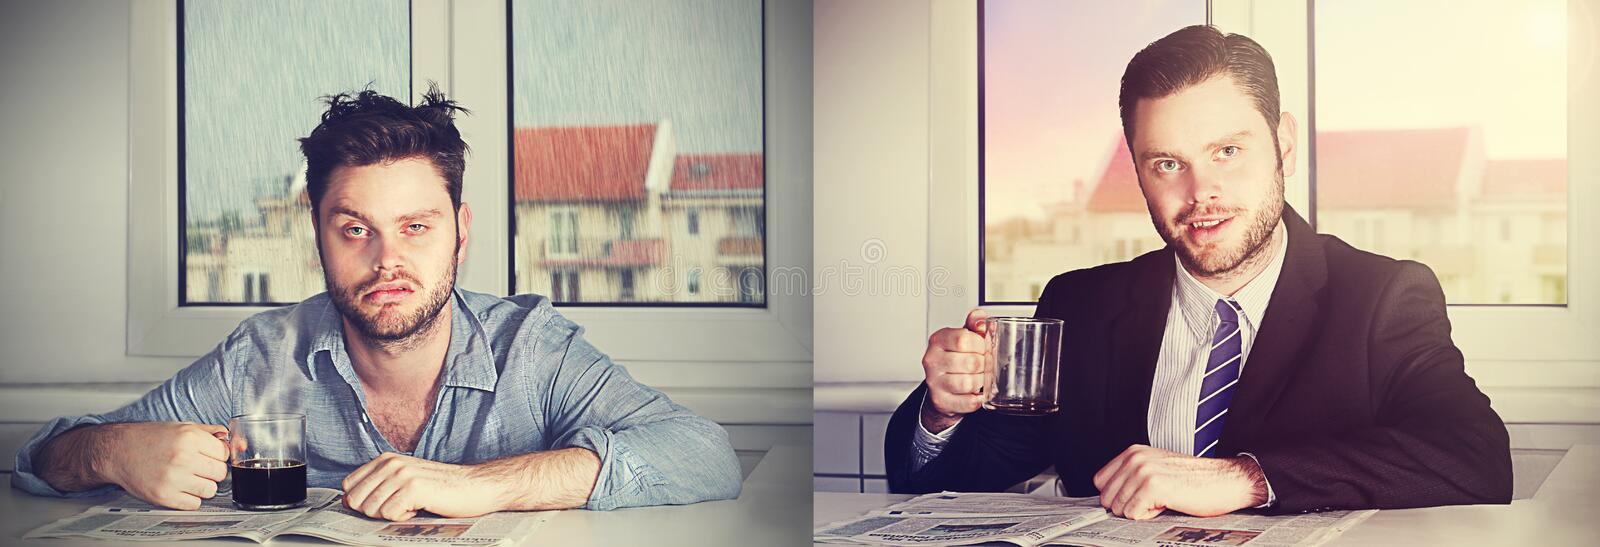 Before and after koffie stock afbeelding